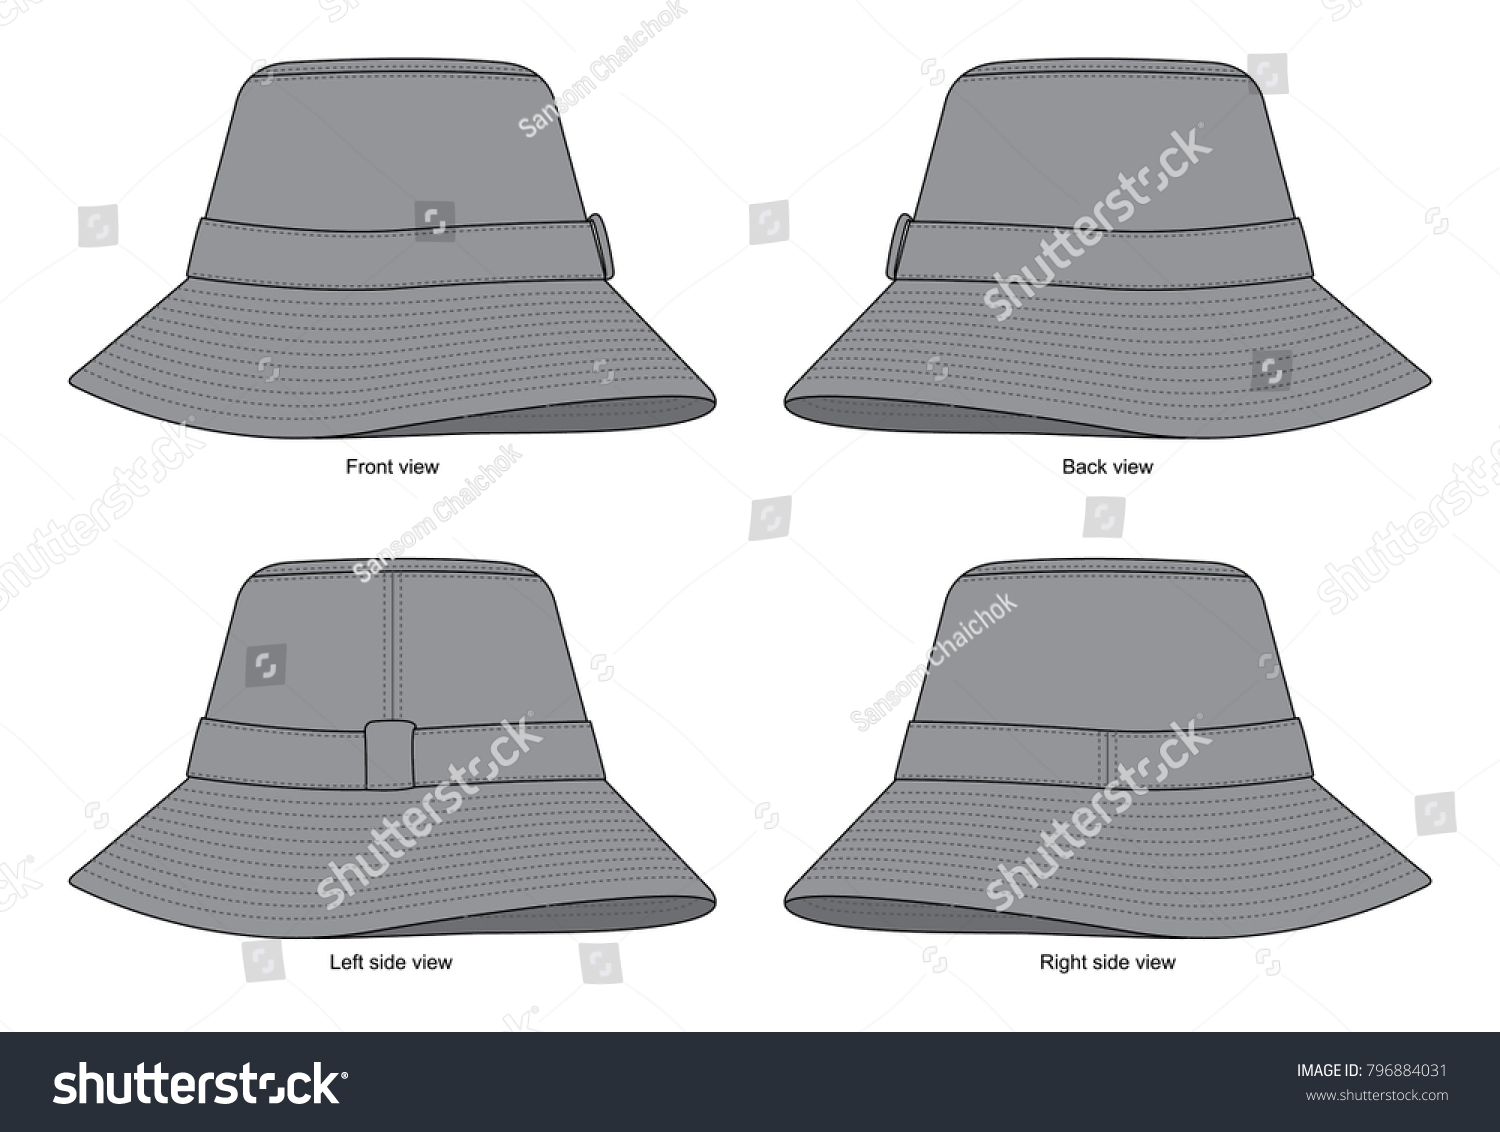 grey bucket hat template stock vector royalty free 796884031